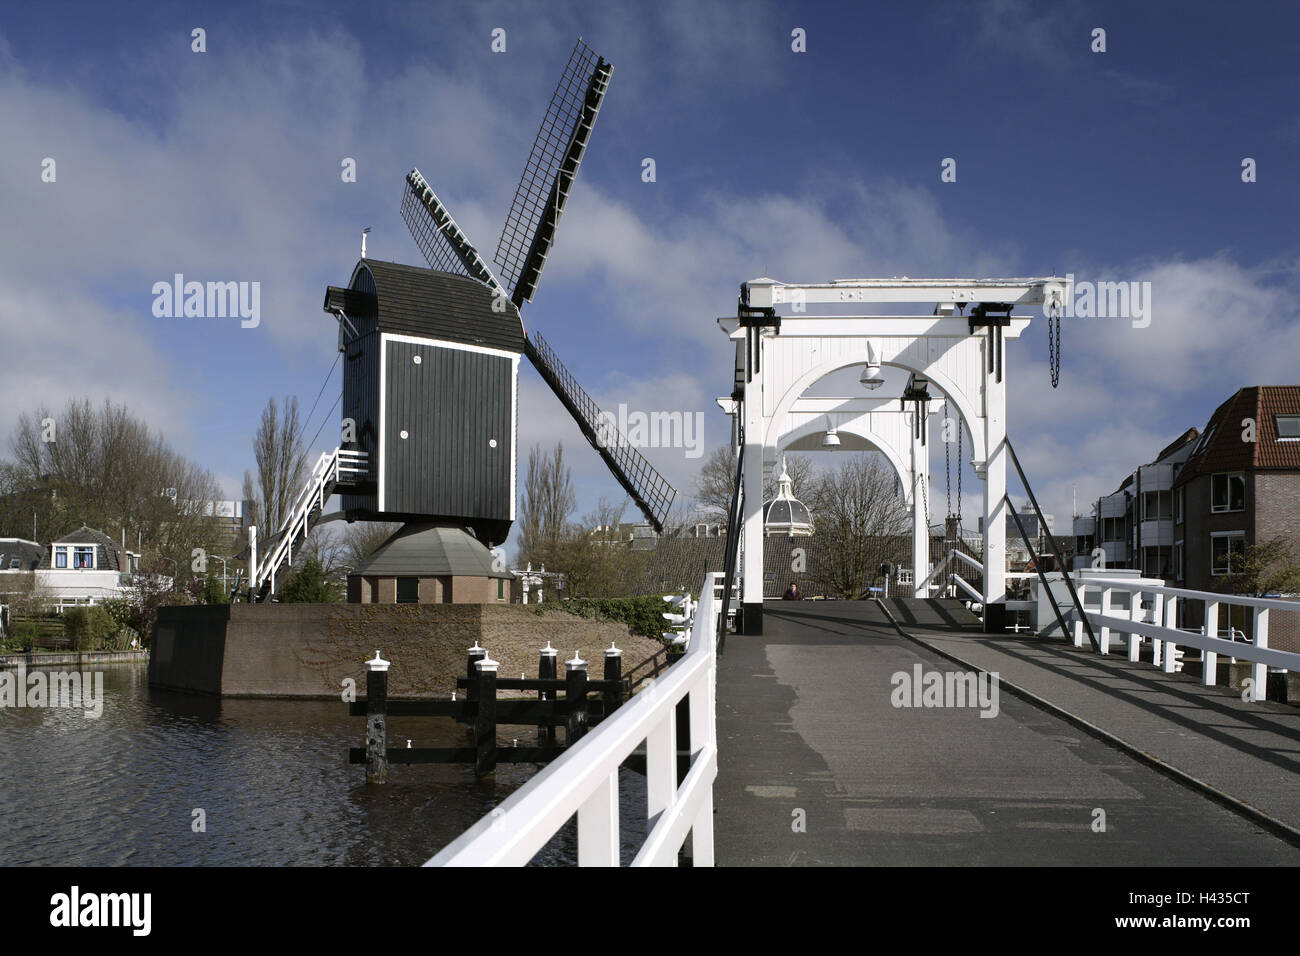 The Netherlands, ailments, windmill, Galgenwater, - Stock Image